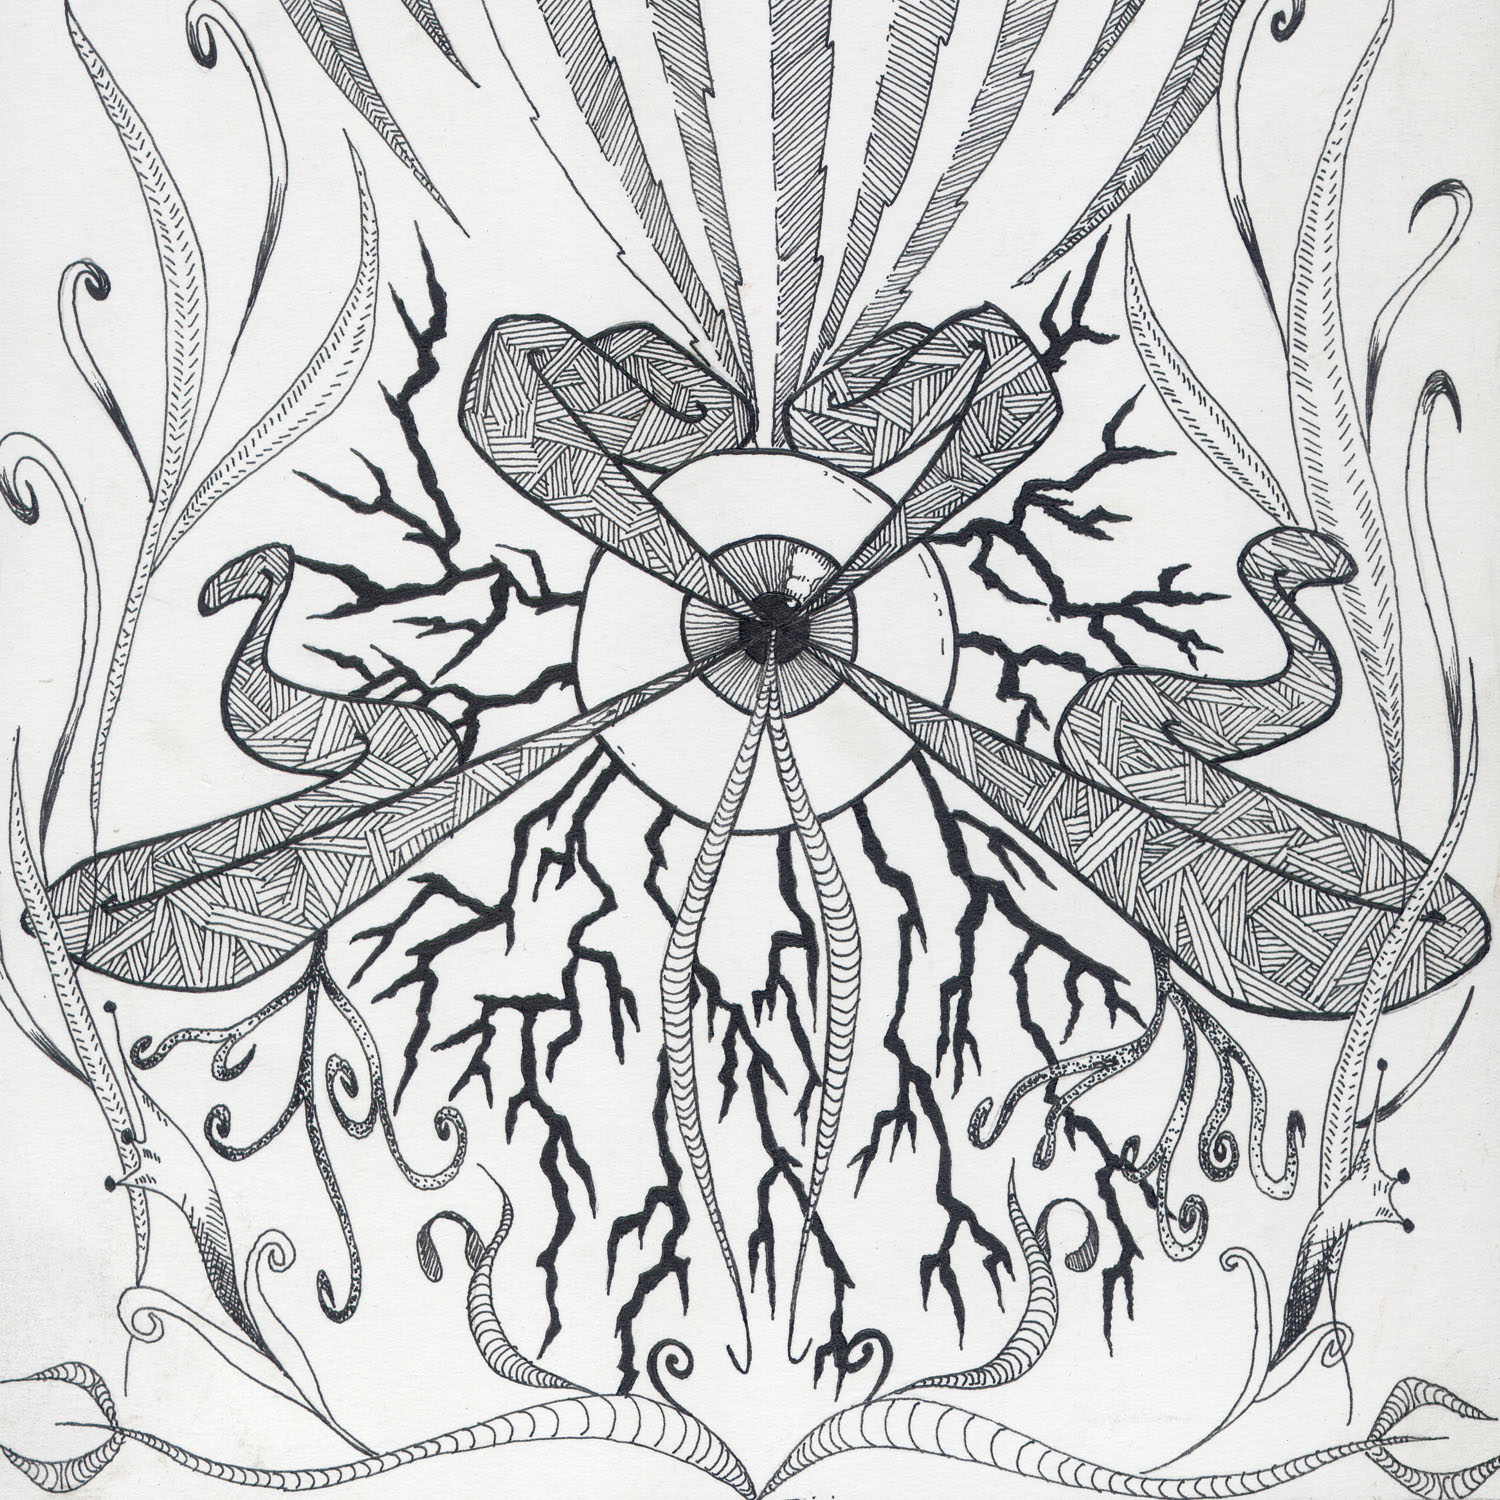 design2 also with trippy mushroom coloring pages 1 on trippy mushroom coloring pages likewise trippy mushroom coloring pages 2 on trippy mushroom coloring pages also mushroom coloring pages on trippy mushroom coloring pages additionally trippy mushroom coloring pages 4 on trippy mushroom coloring pages